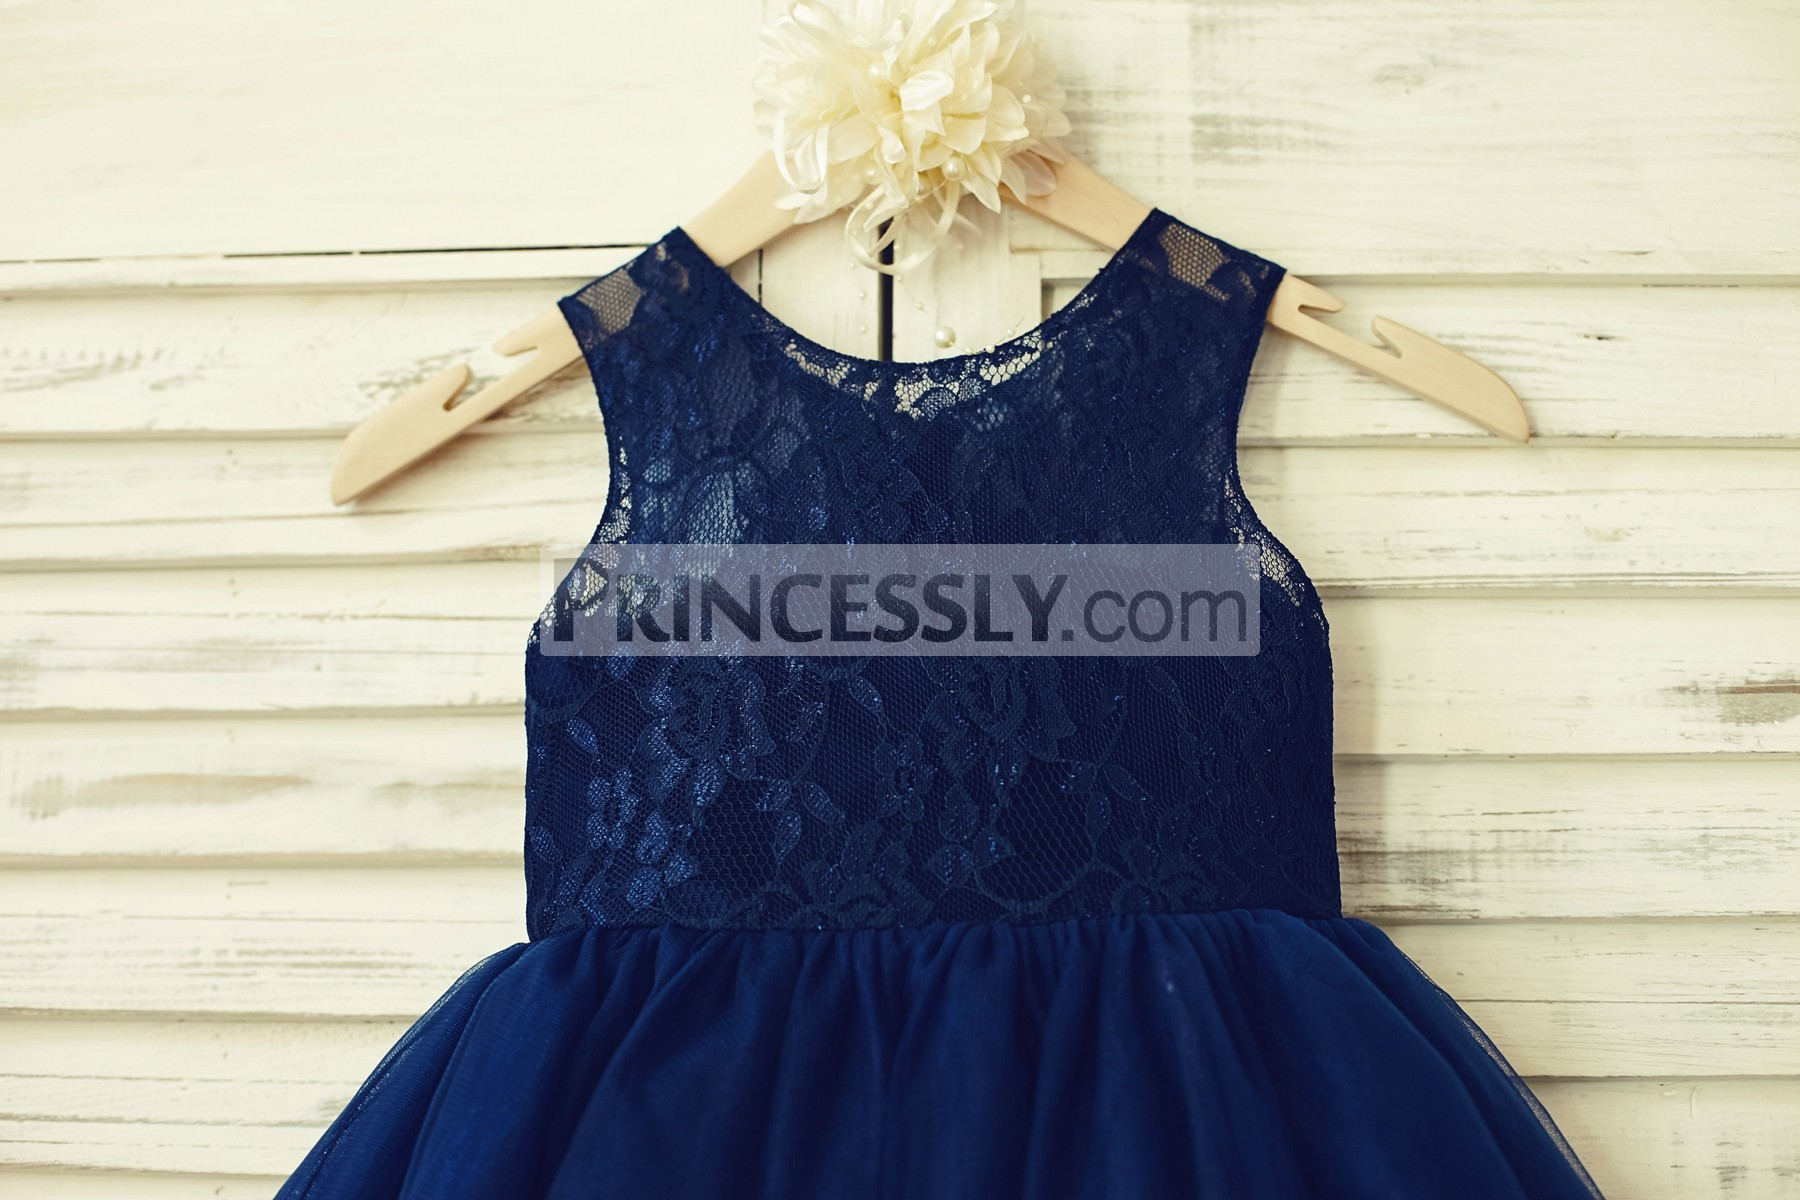 Sleeveless navy blue lace bodice with inside sweetheart neckline